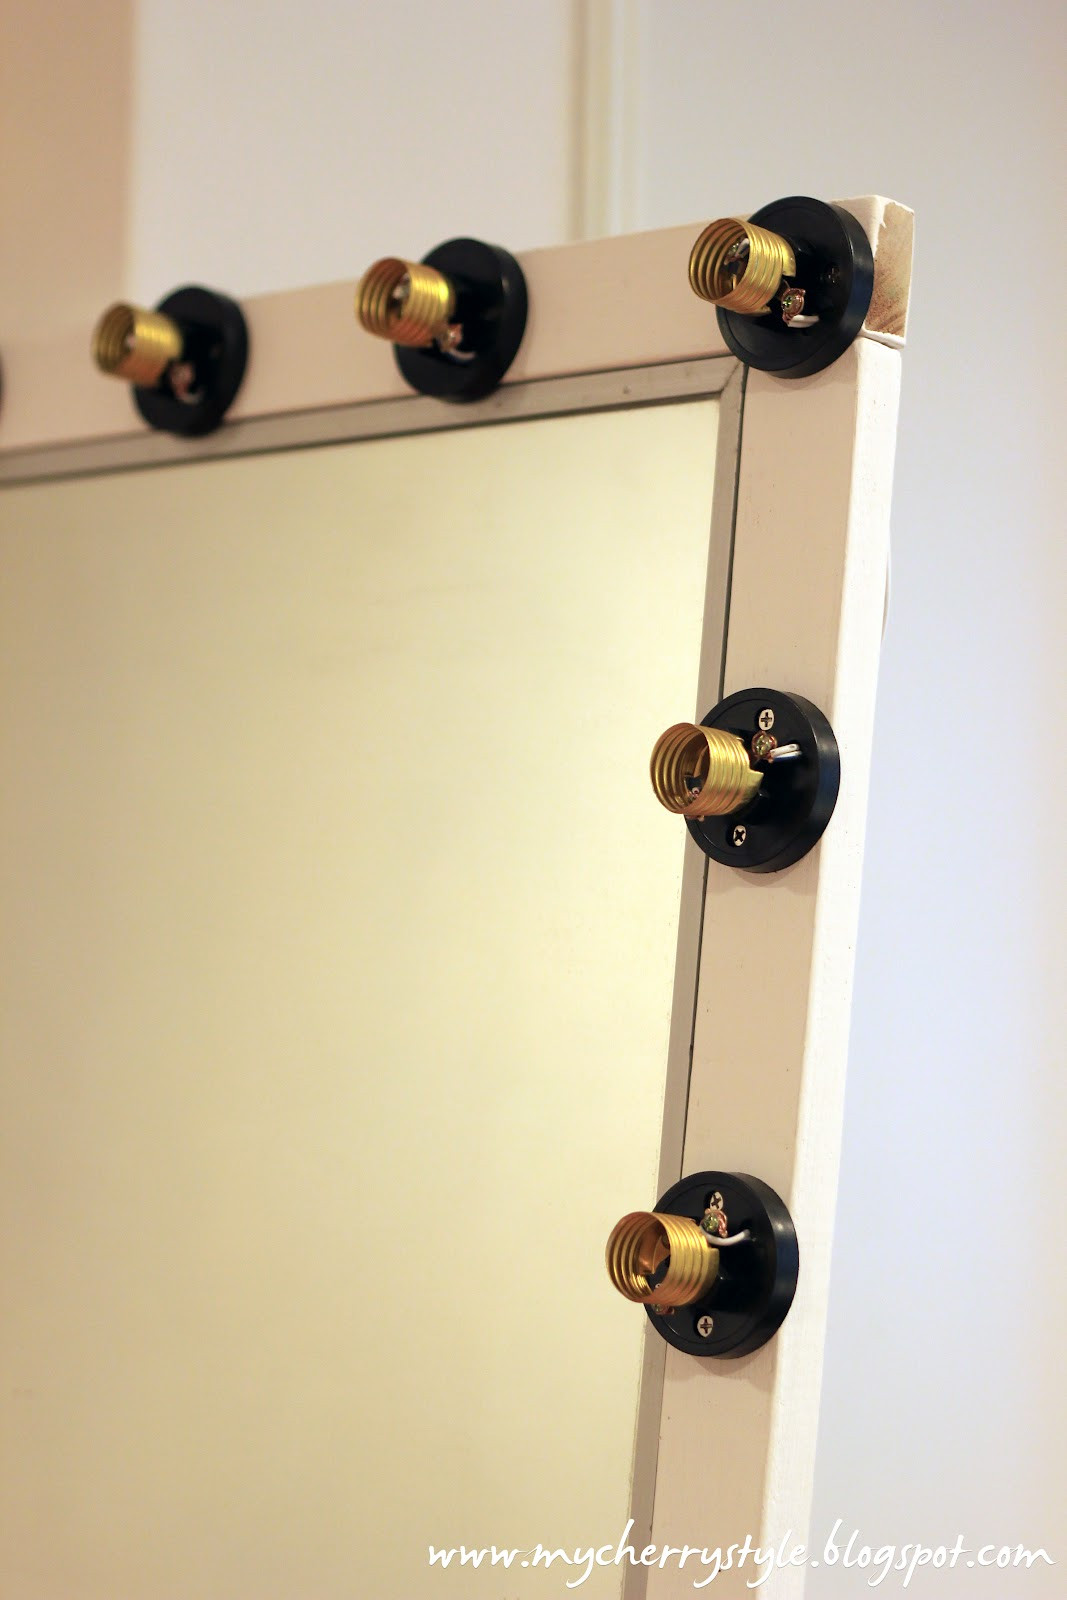 Hollywood Vanity Mirror DIY  DIY Hollywood style mirror with lights Tutorial from